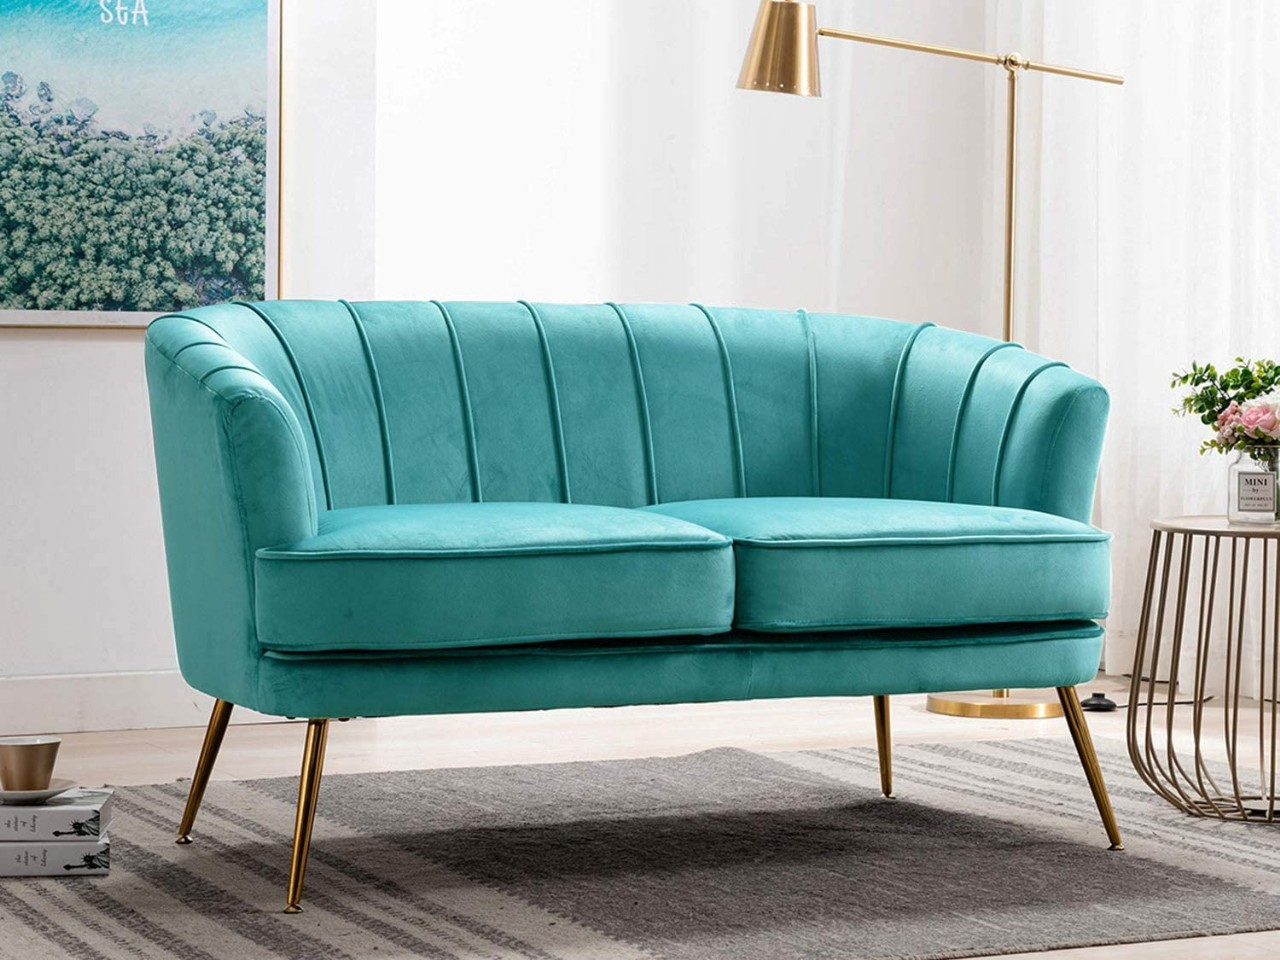 Velvet Loveseat Sofas Curved Tufted Sofas with Golden Finished Metal Legs